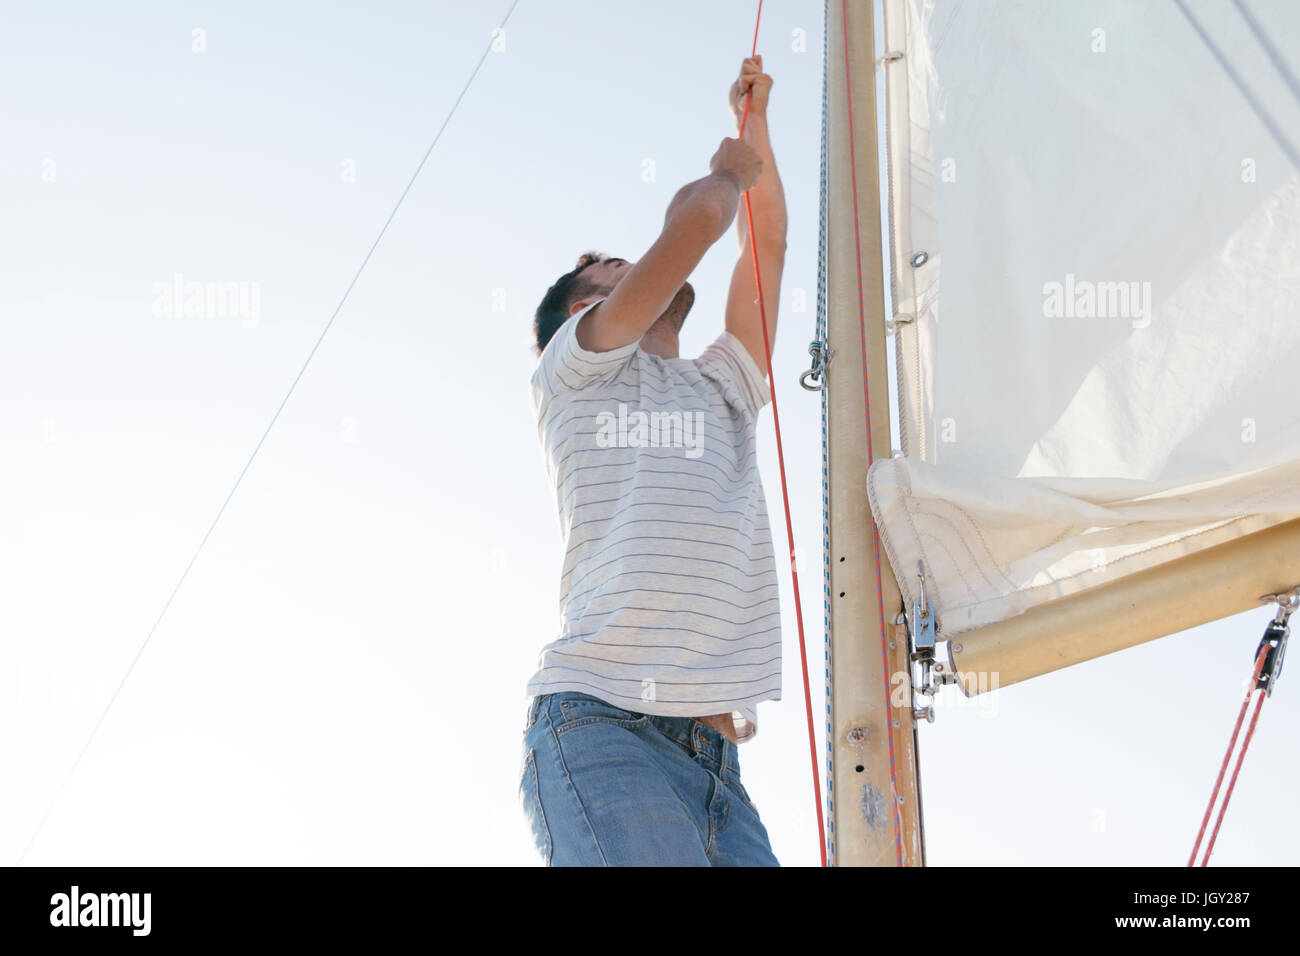 Man on sailing boat, hoisting sail - Stock Image